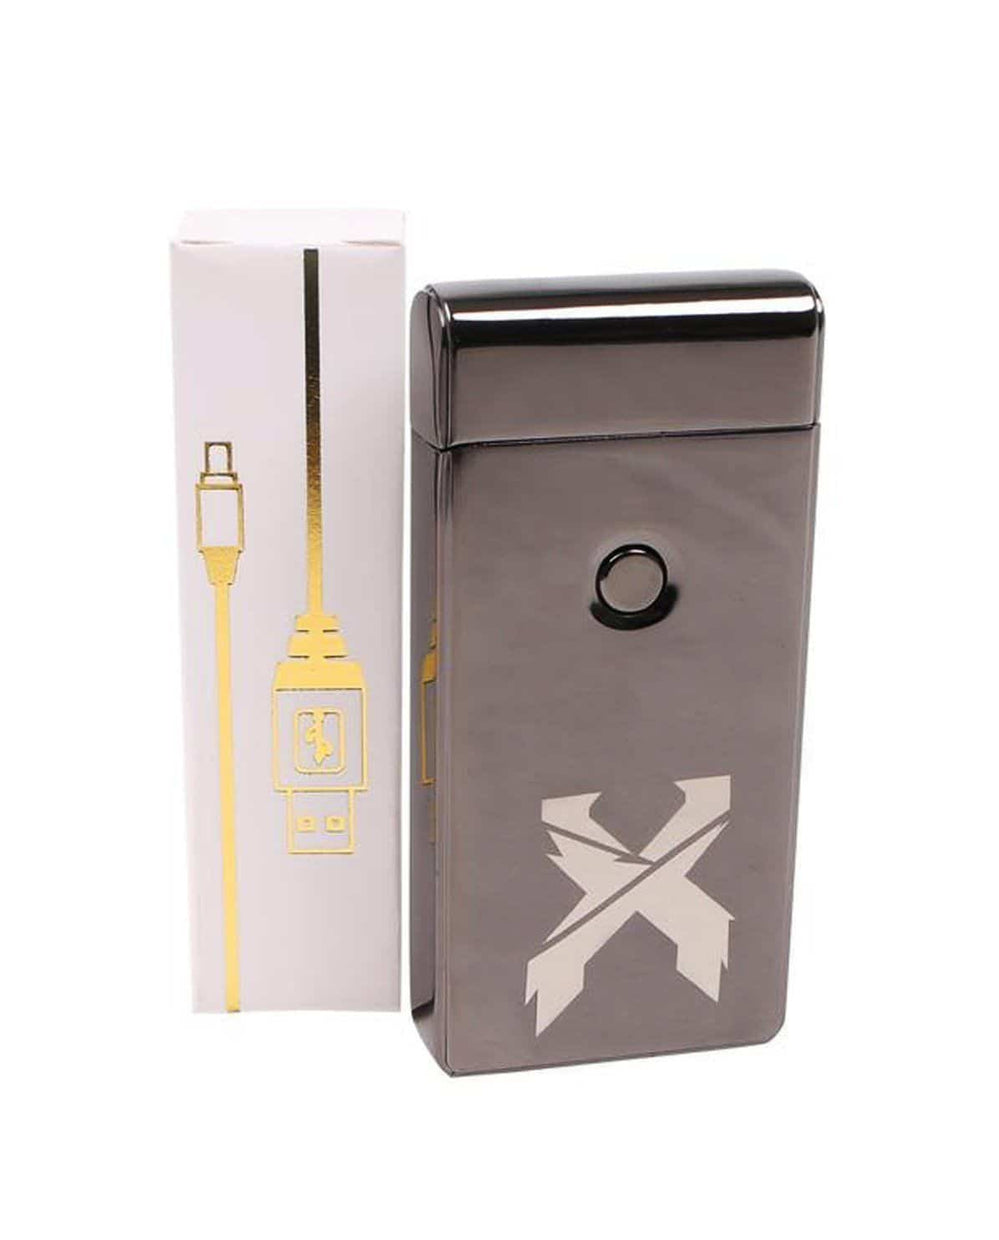 Excision X Flame Lighter - Brushed Black Version 2.0